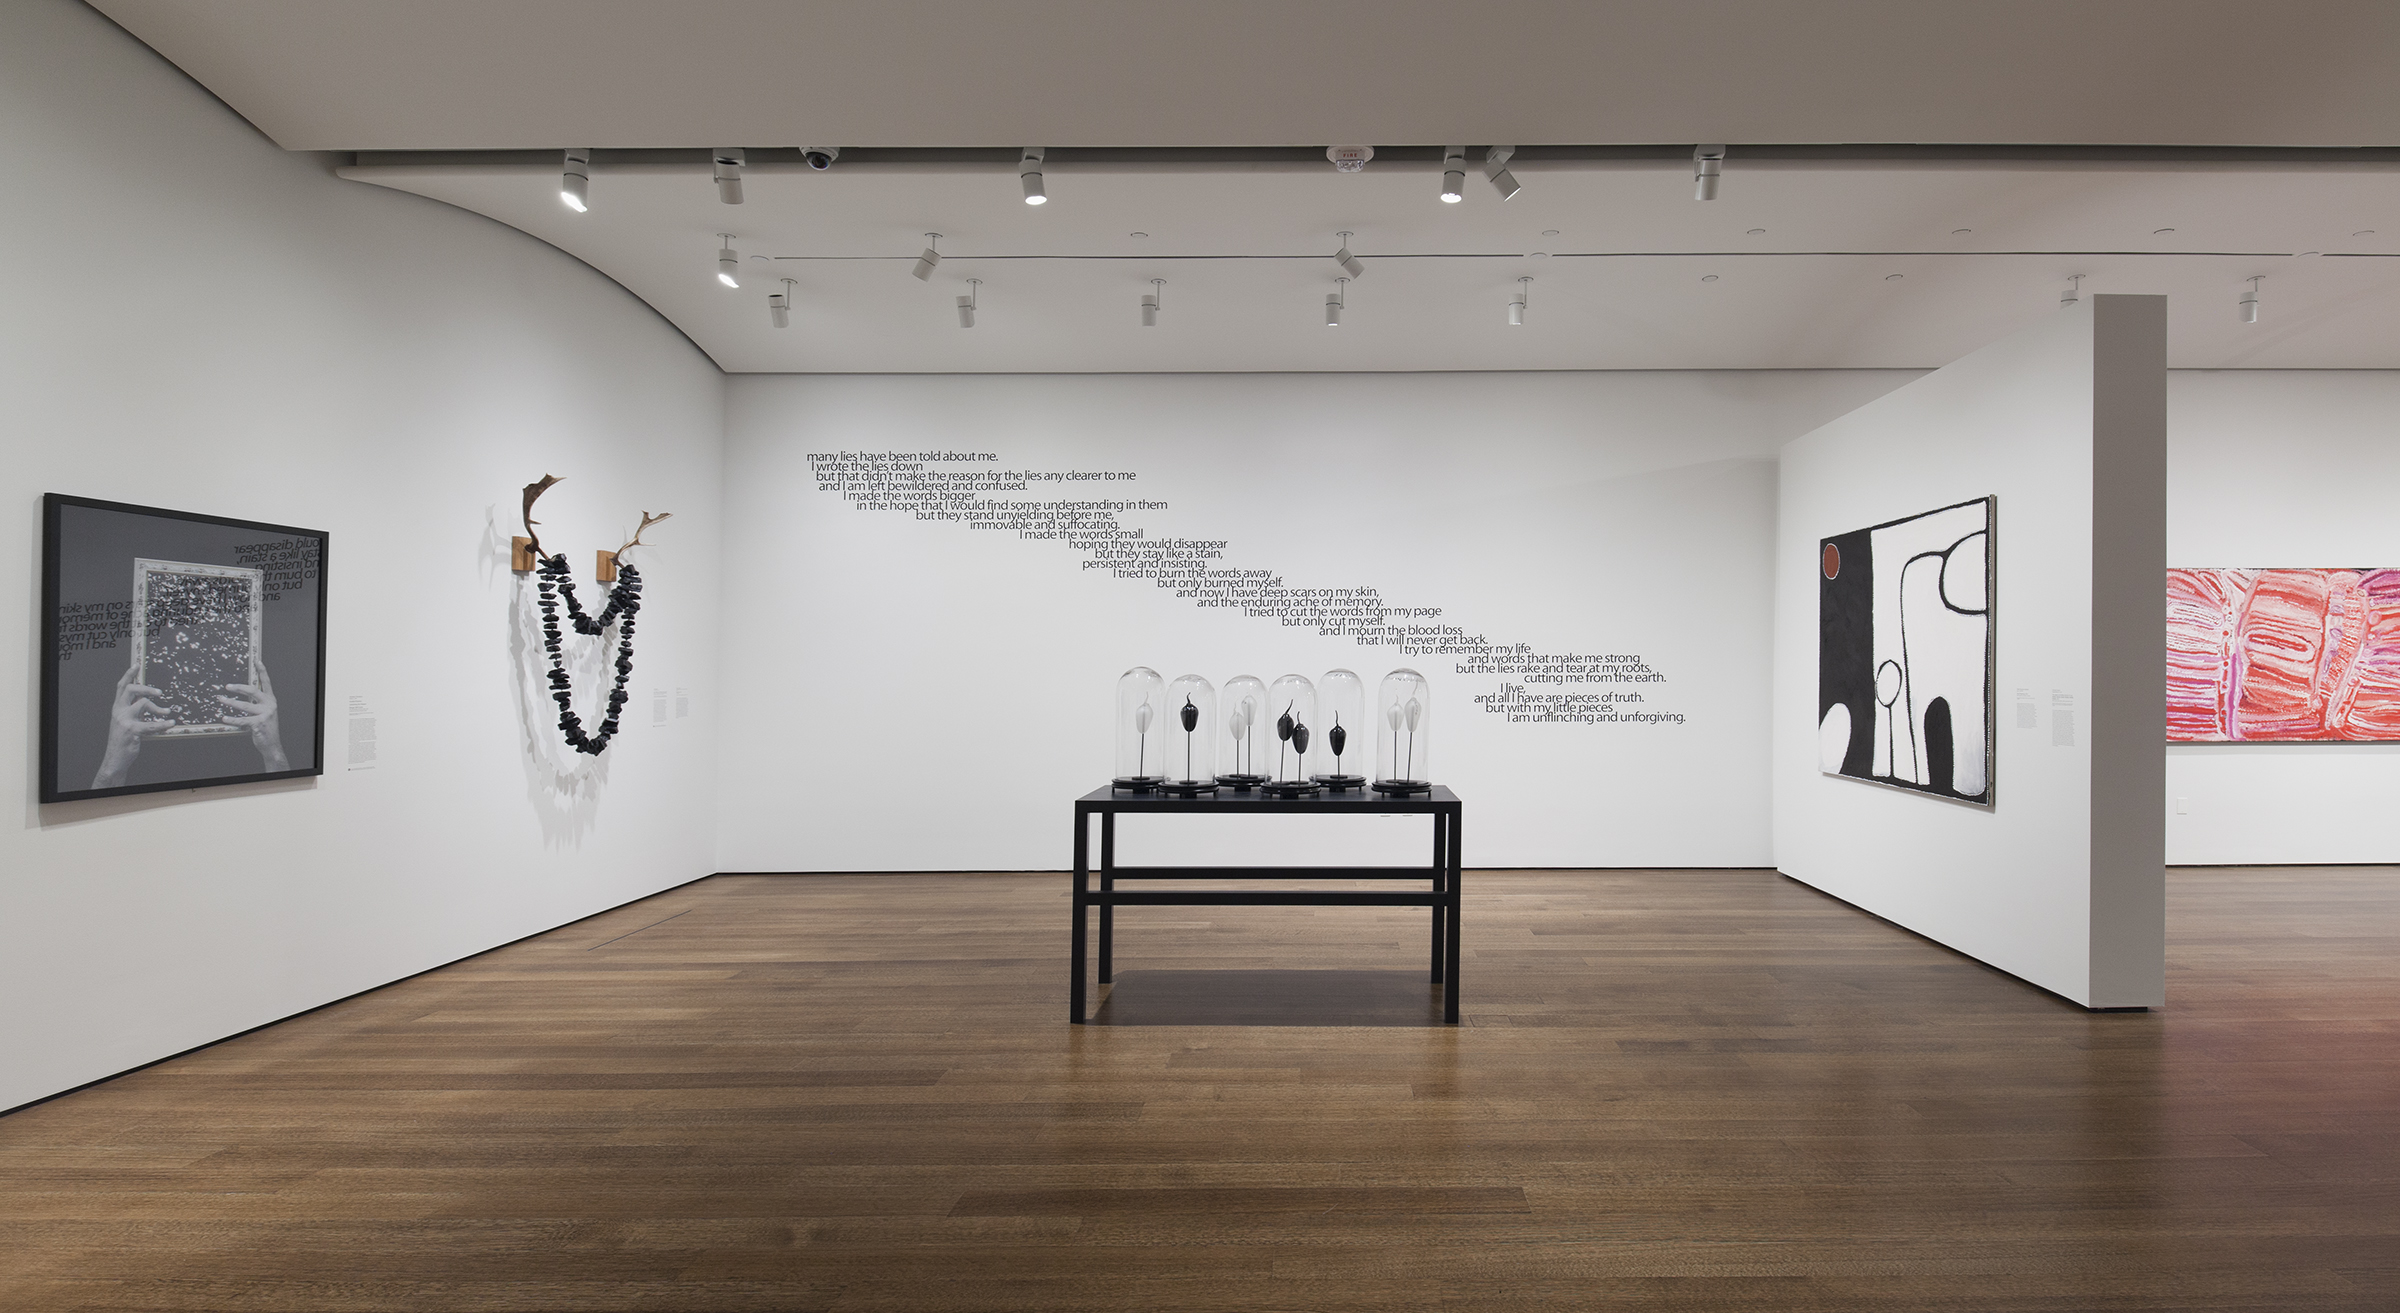 """Exhibition gallery featuring a variety of artworks. In center of gallery is a sculpture consisting of a black table covered with glass """"specimen"""" cases. Black text is installed across the back wall (like a scar). On the left wall is a black-and-white photograph of two hands holding a square object and a sculpture consisting of a set of antlers with a giant necklace composed of coal. On the right, is a black, white and red abstract painting."""